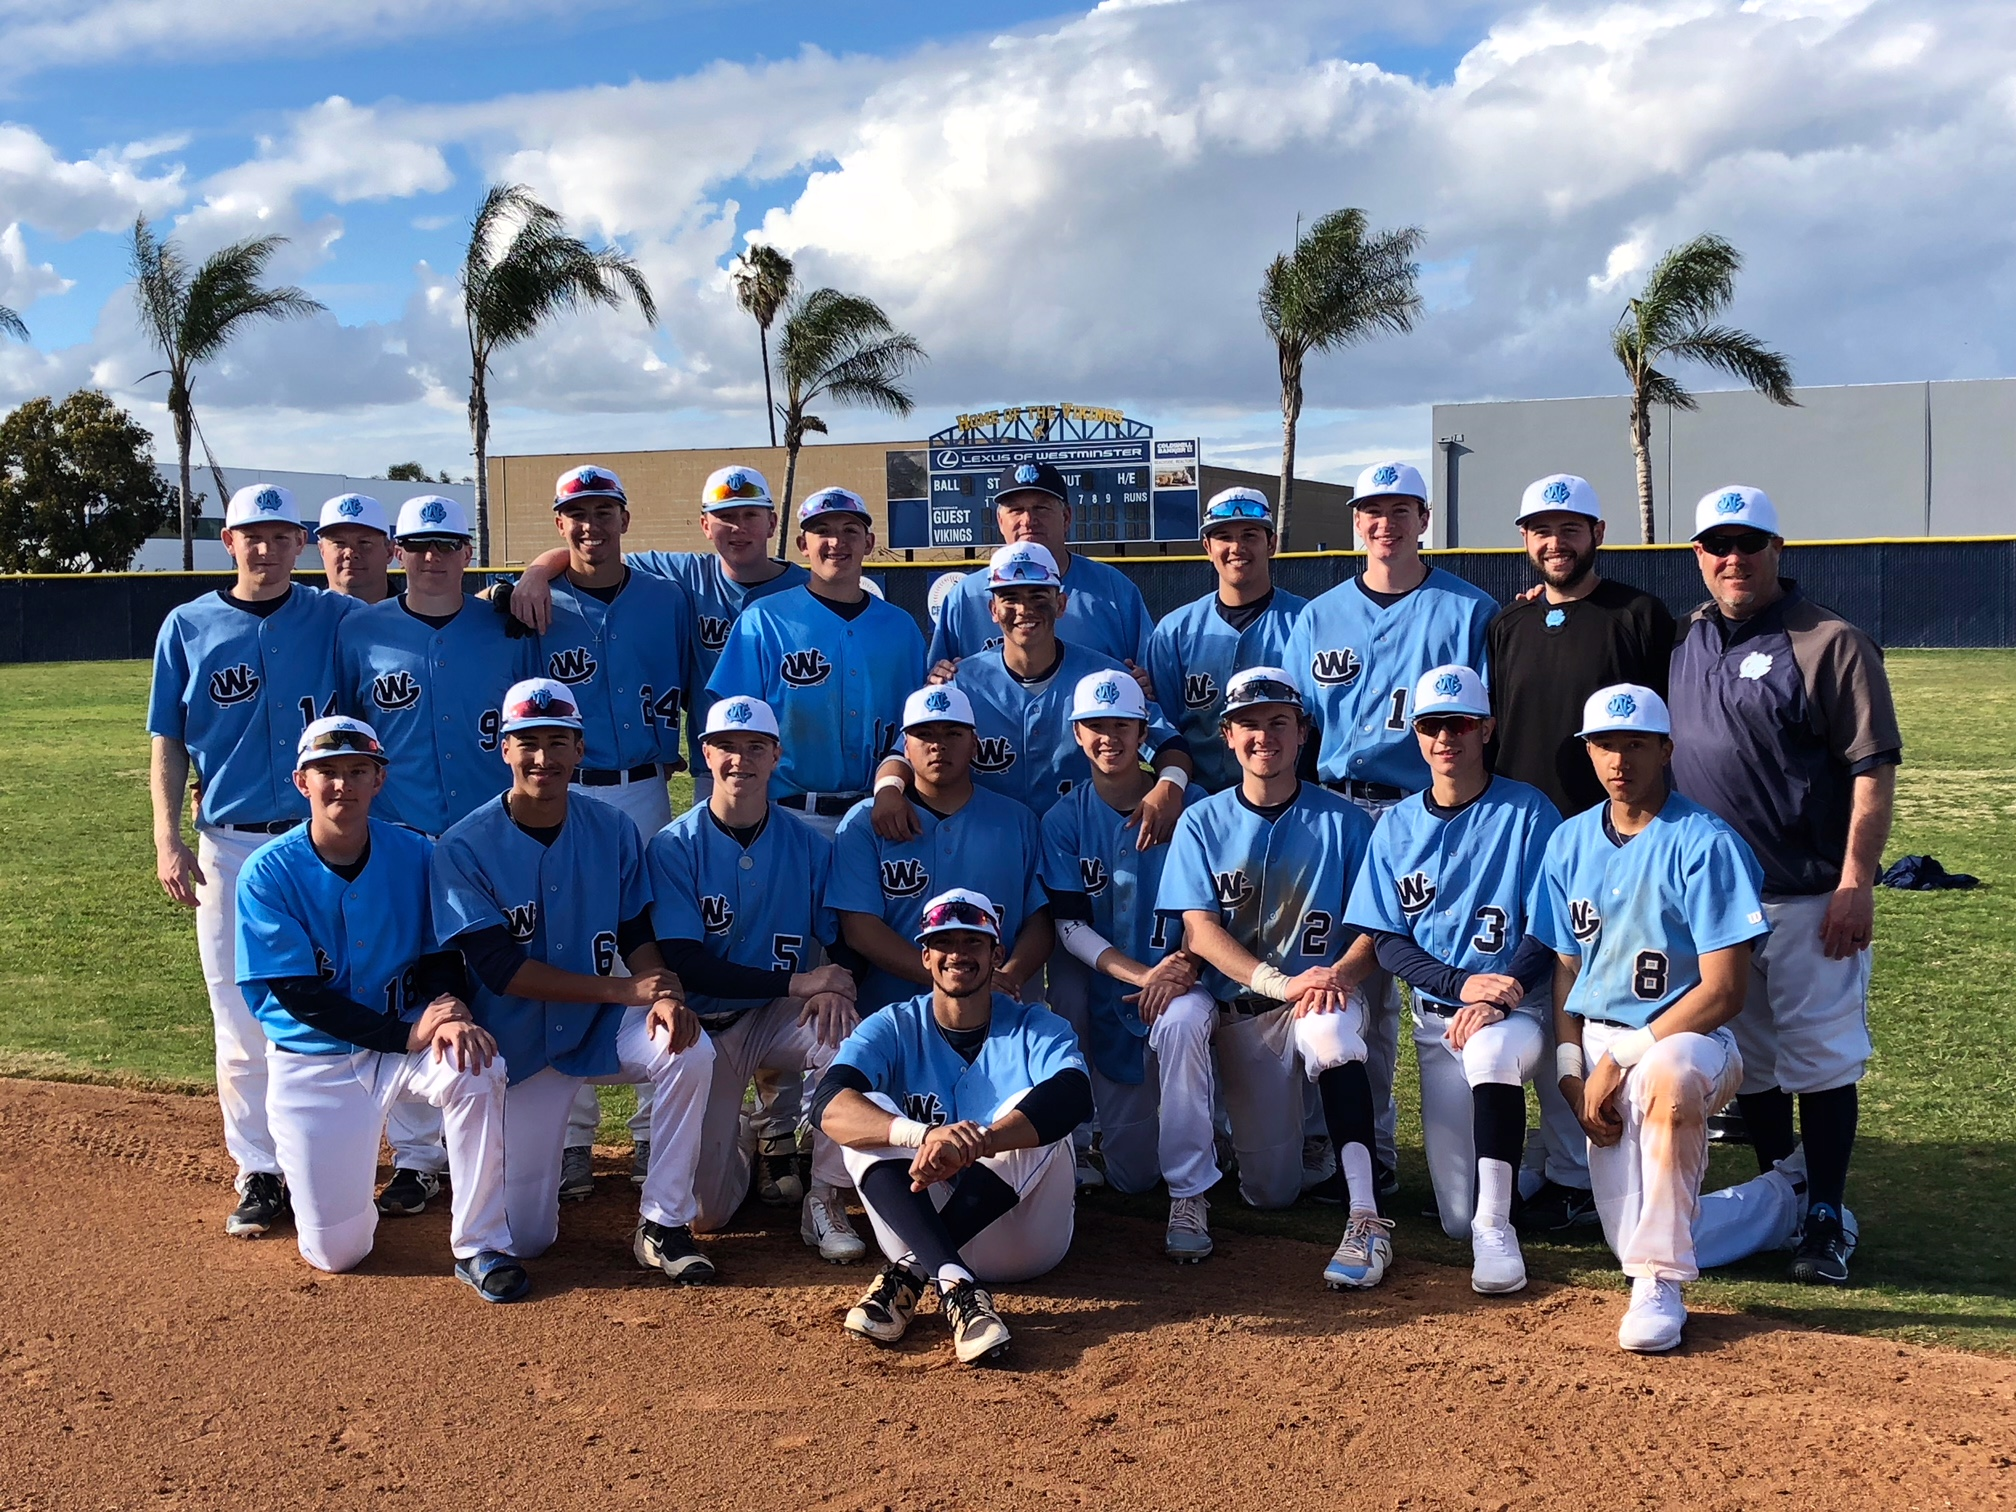 Back from California, Spartans baseball team ready for Colorado competition